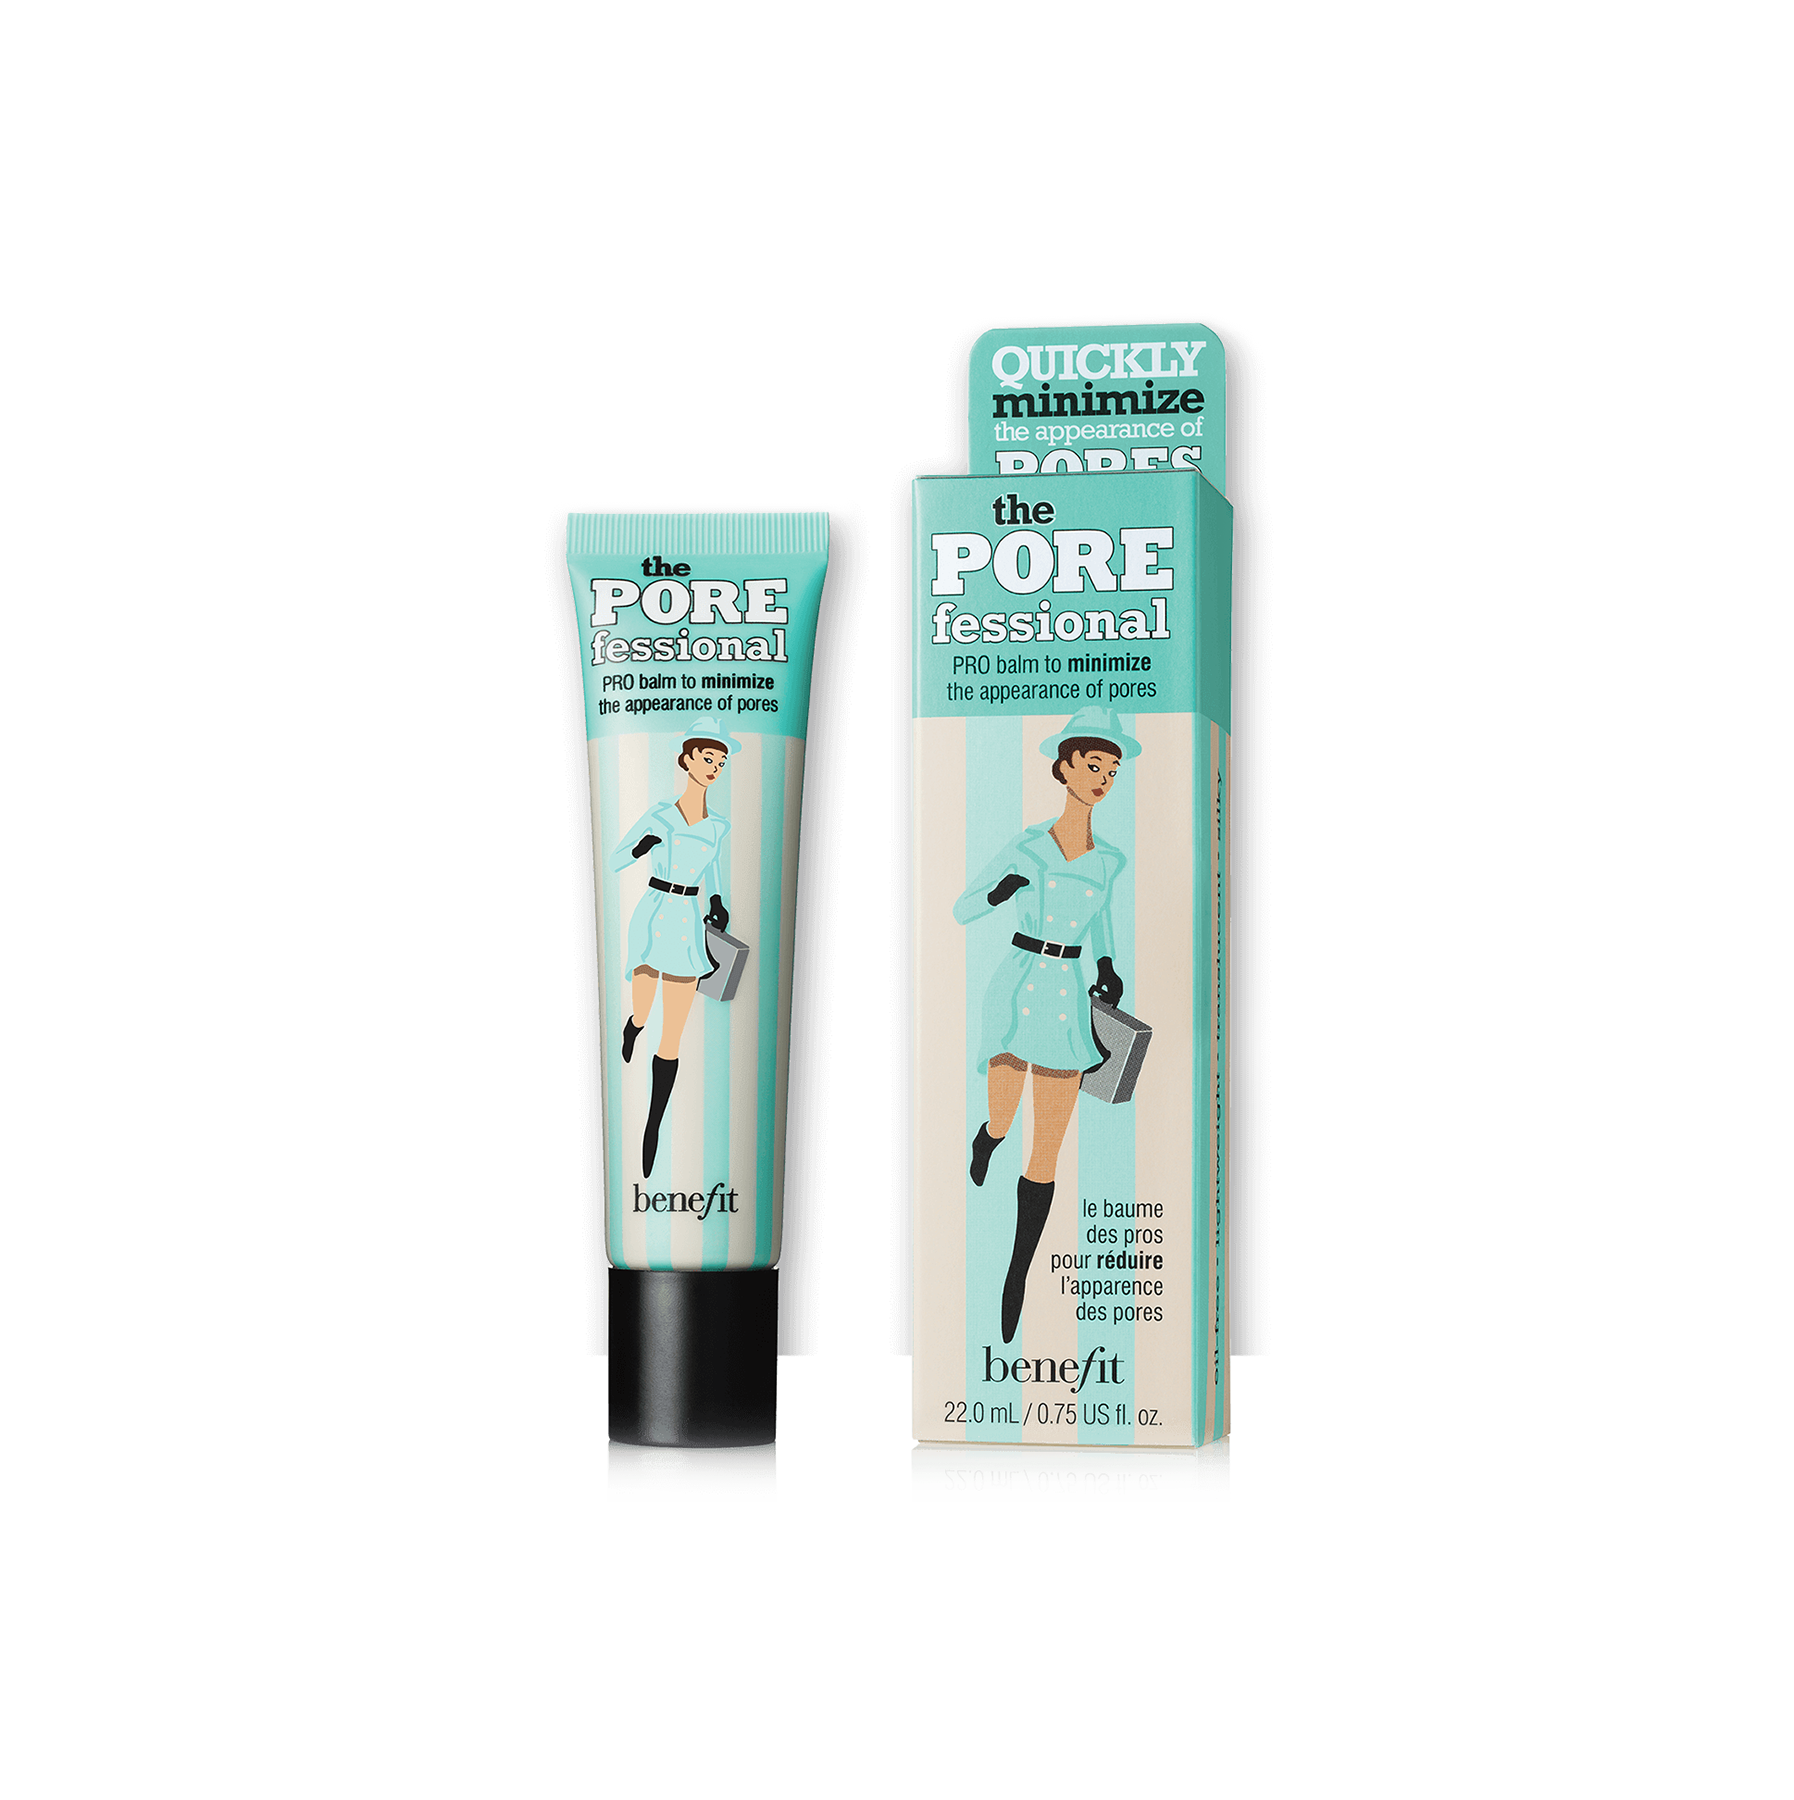 the-porefessional-face-primer